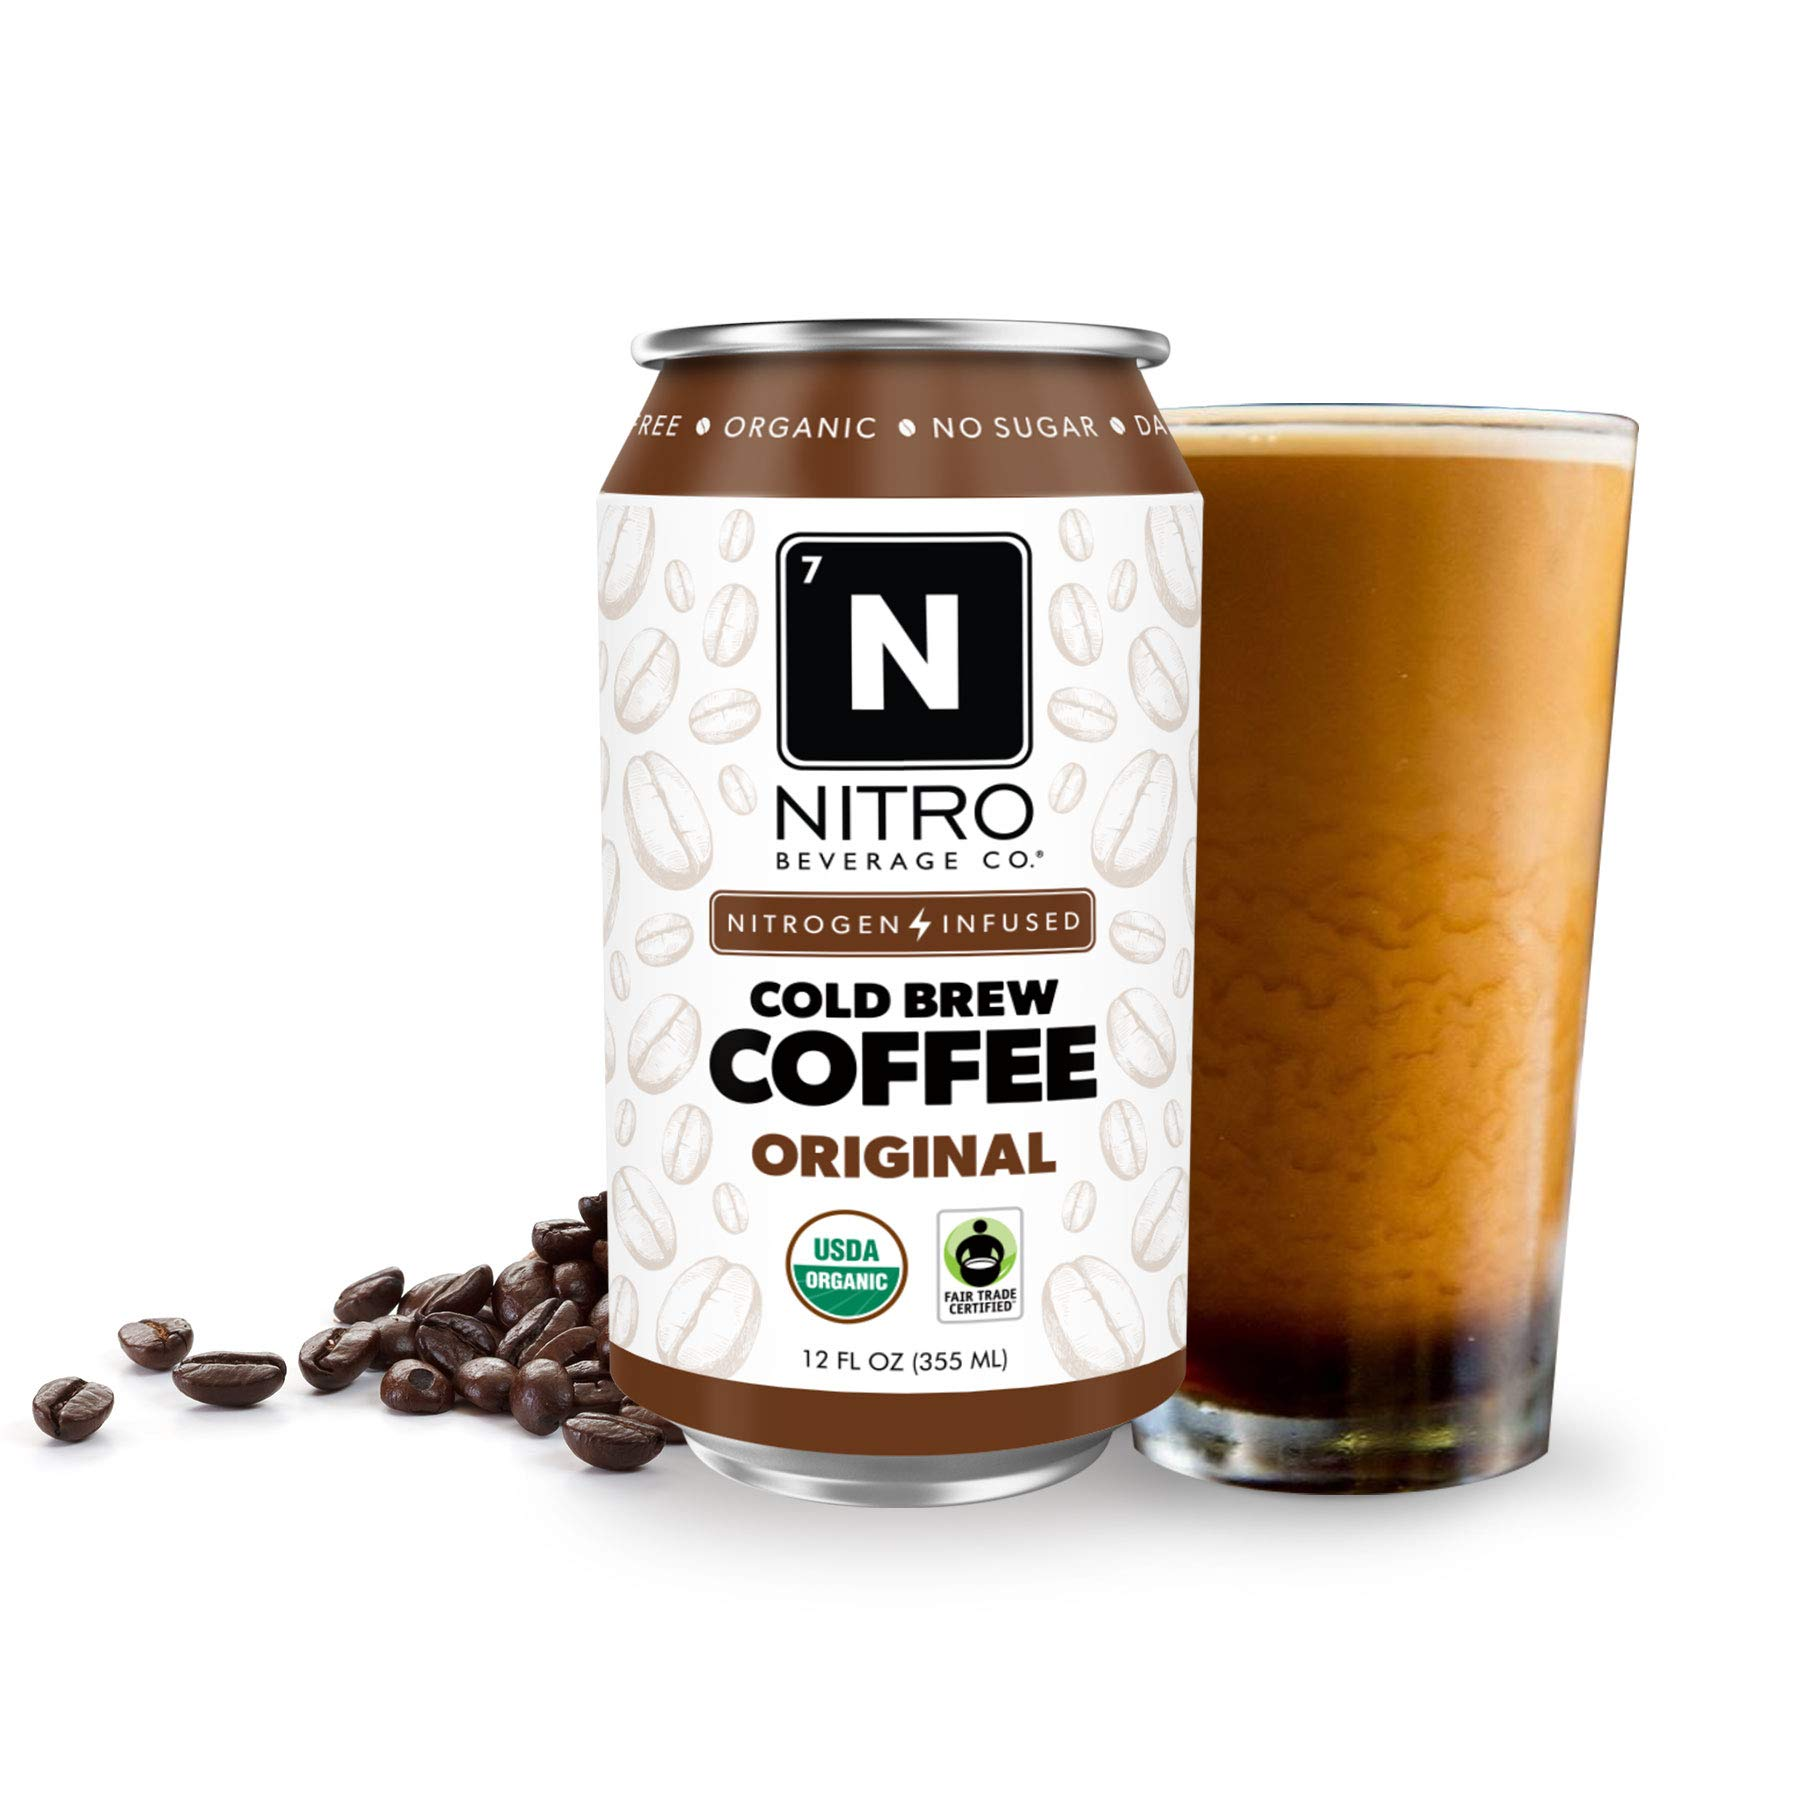 NITRO Beverage Co. | 12-Pack (12 fl oz) | Original NITRO Cold Brew Coffee | Certified Organic & Fair-Trade | Sugar Free, Dairy Free, Zero Calories | Always Cold, Always Fresh